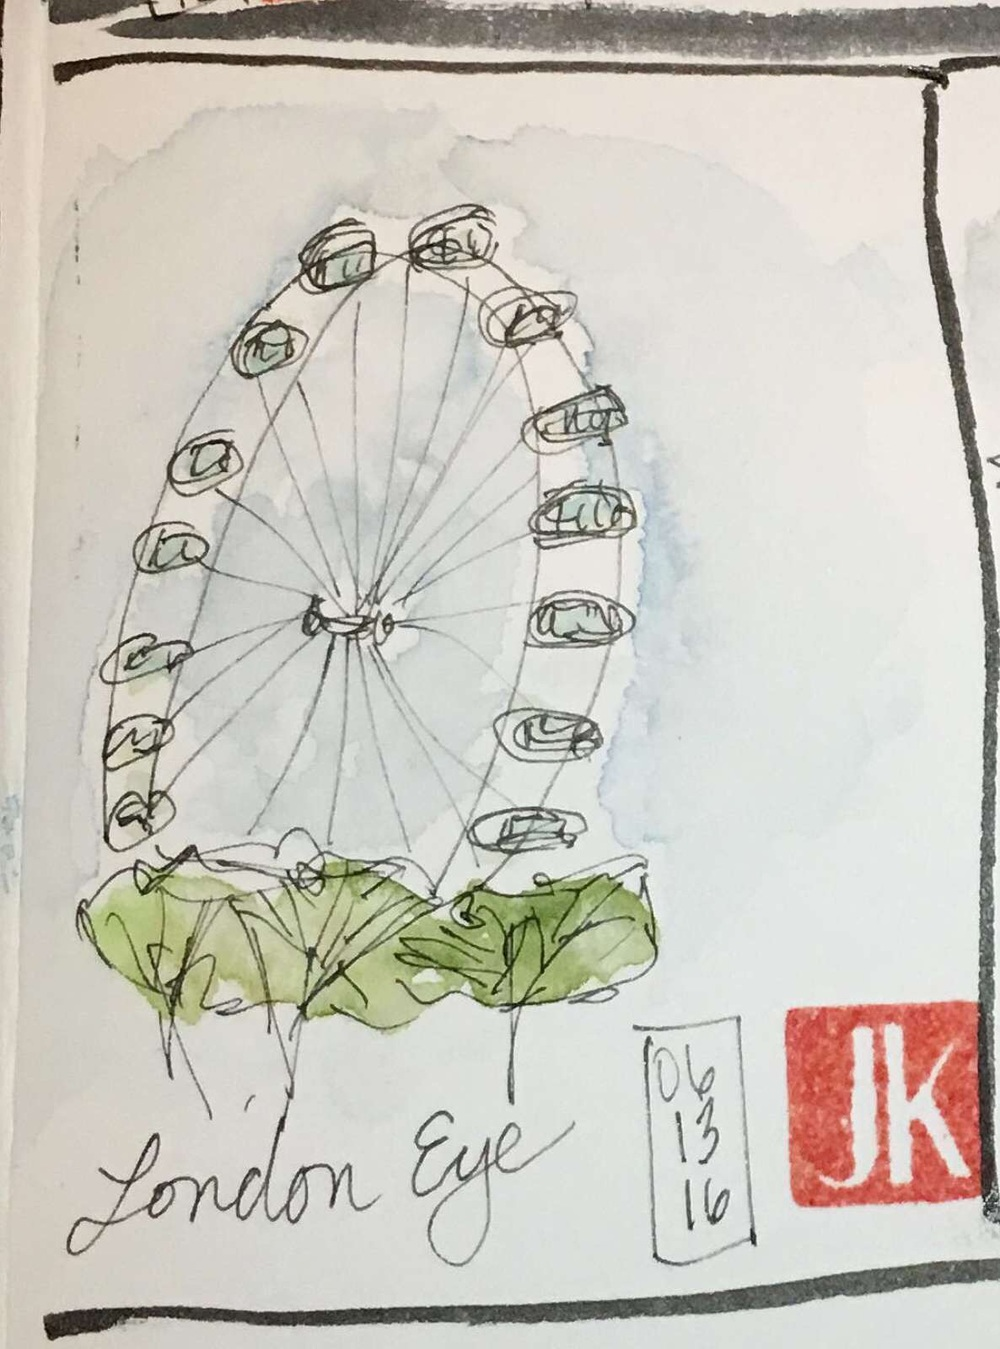 Quick sketch of the London Eye